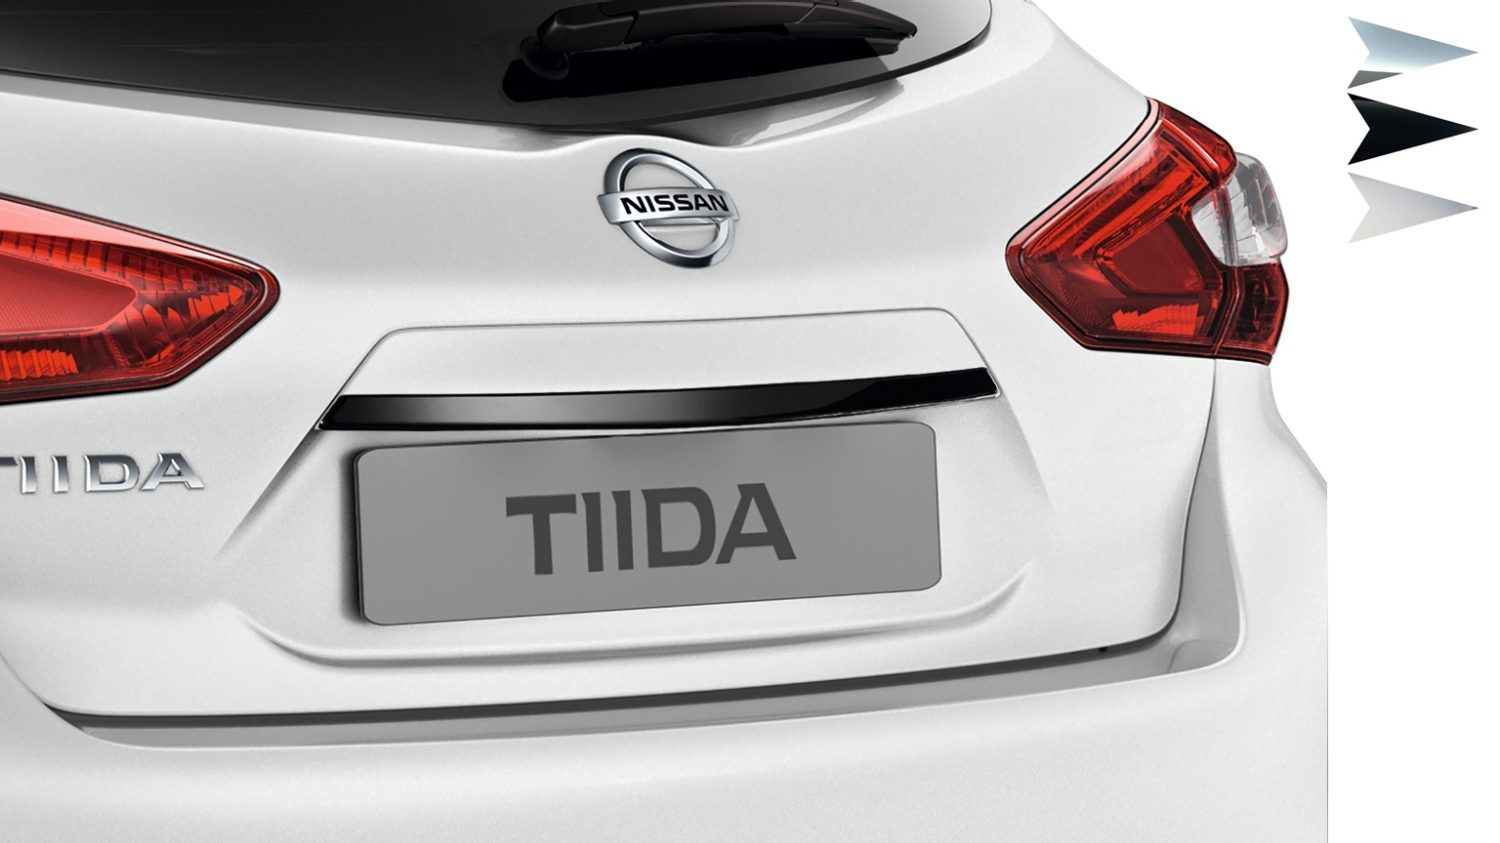 Nissan Tiida - Trunk handle